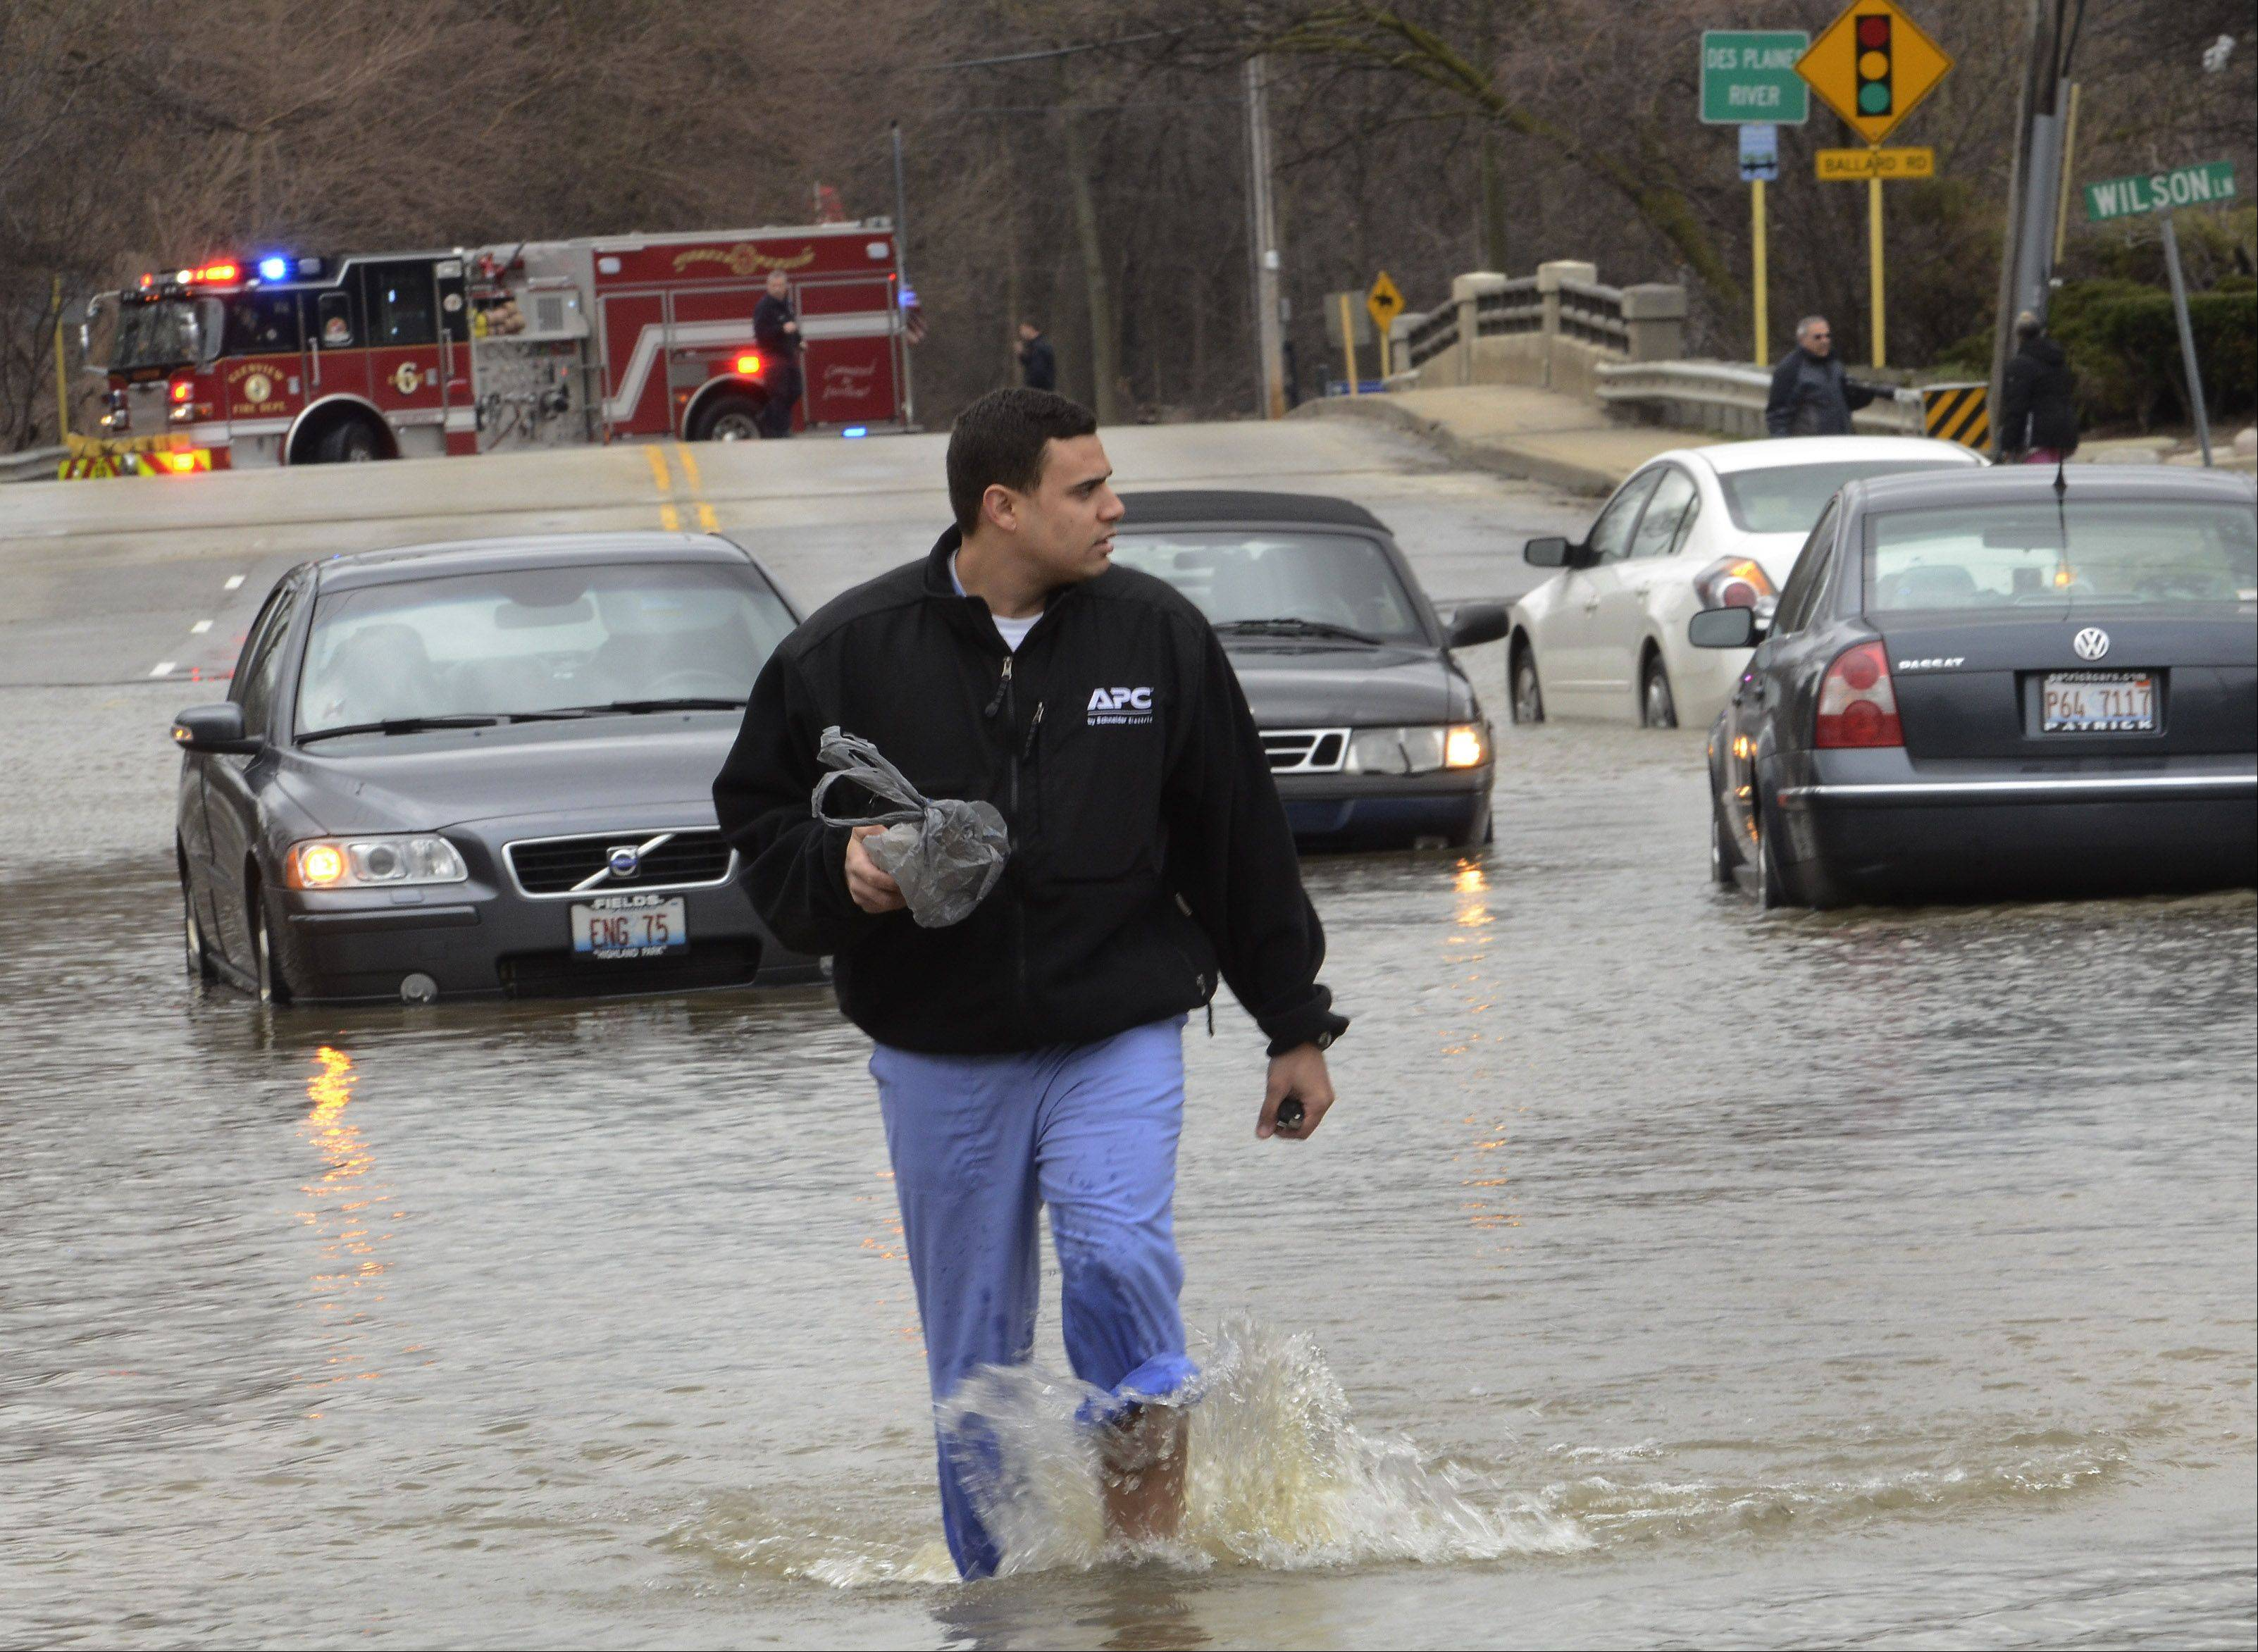 Efrain Baez of Des Plaines walks through the water after crawling out the trunk of his Volkswagen after getting stuck in the flooded intersection of Rand and Wilson in Des Plaines.